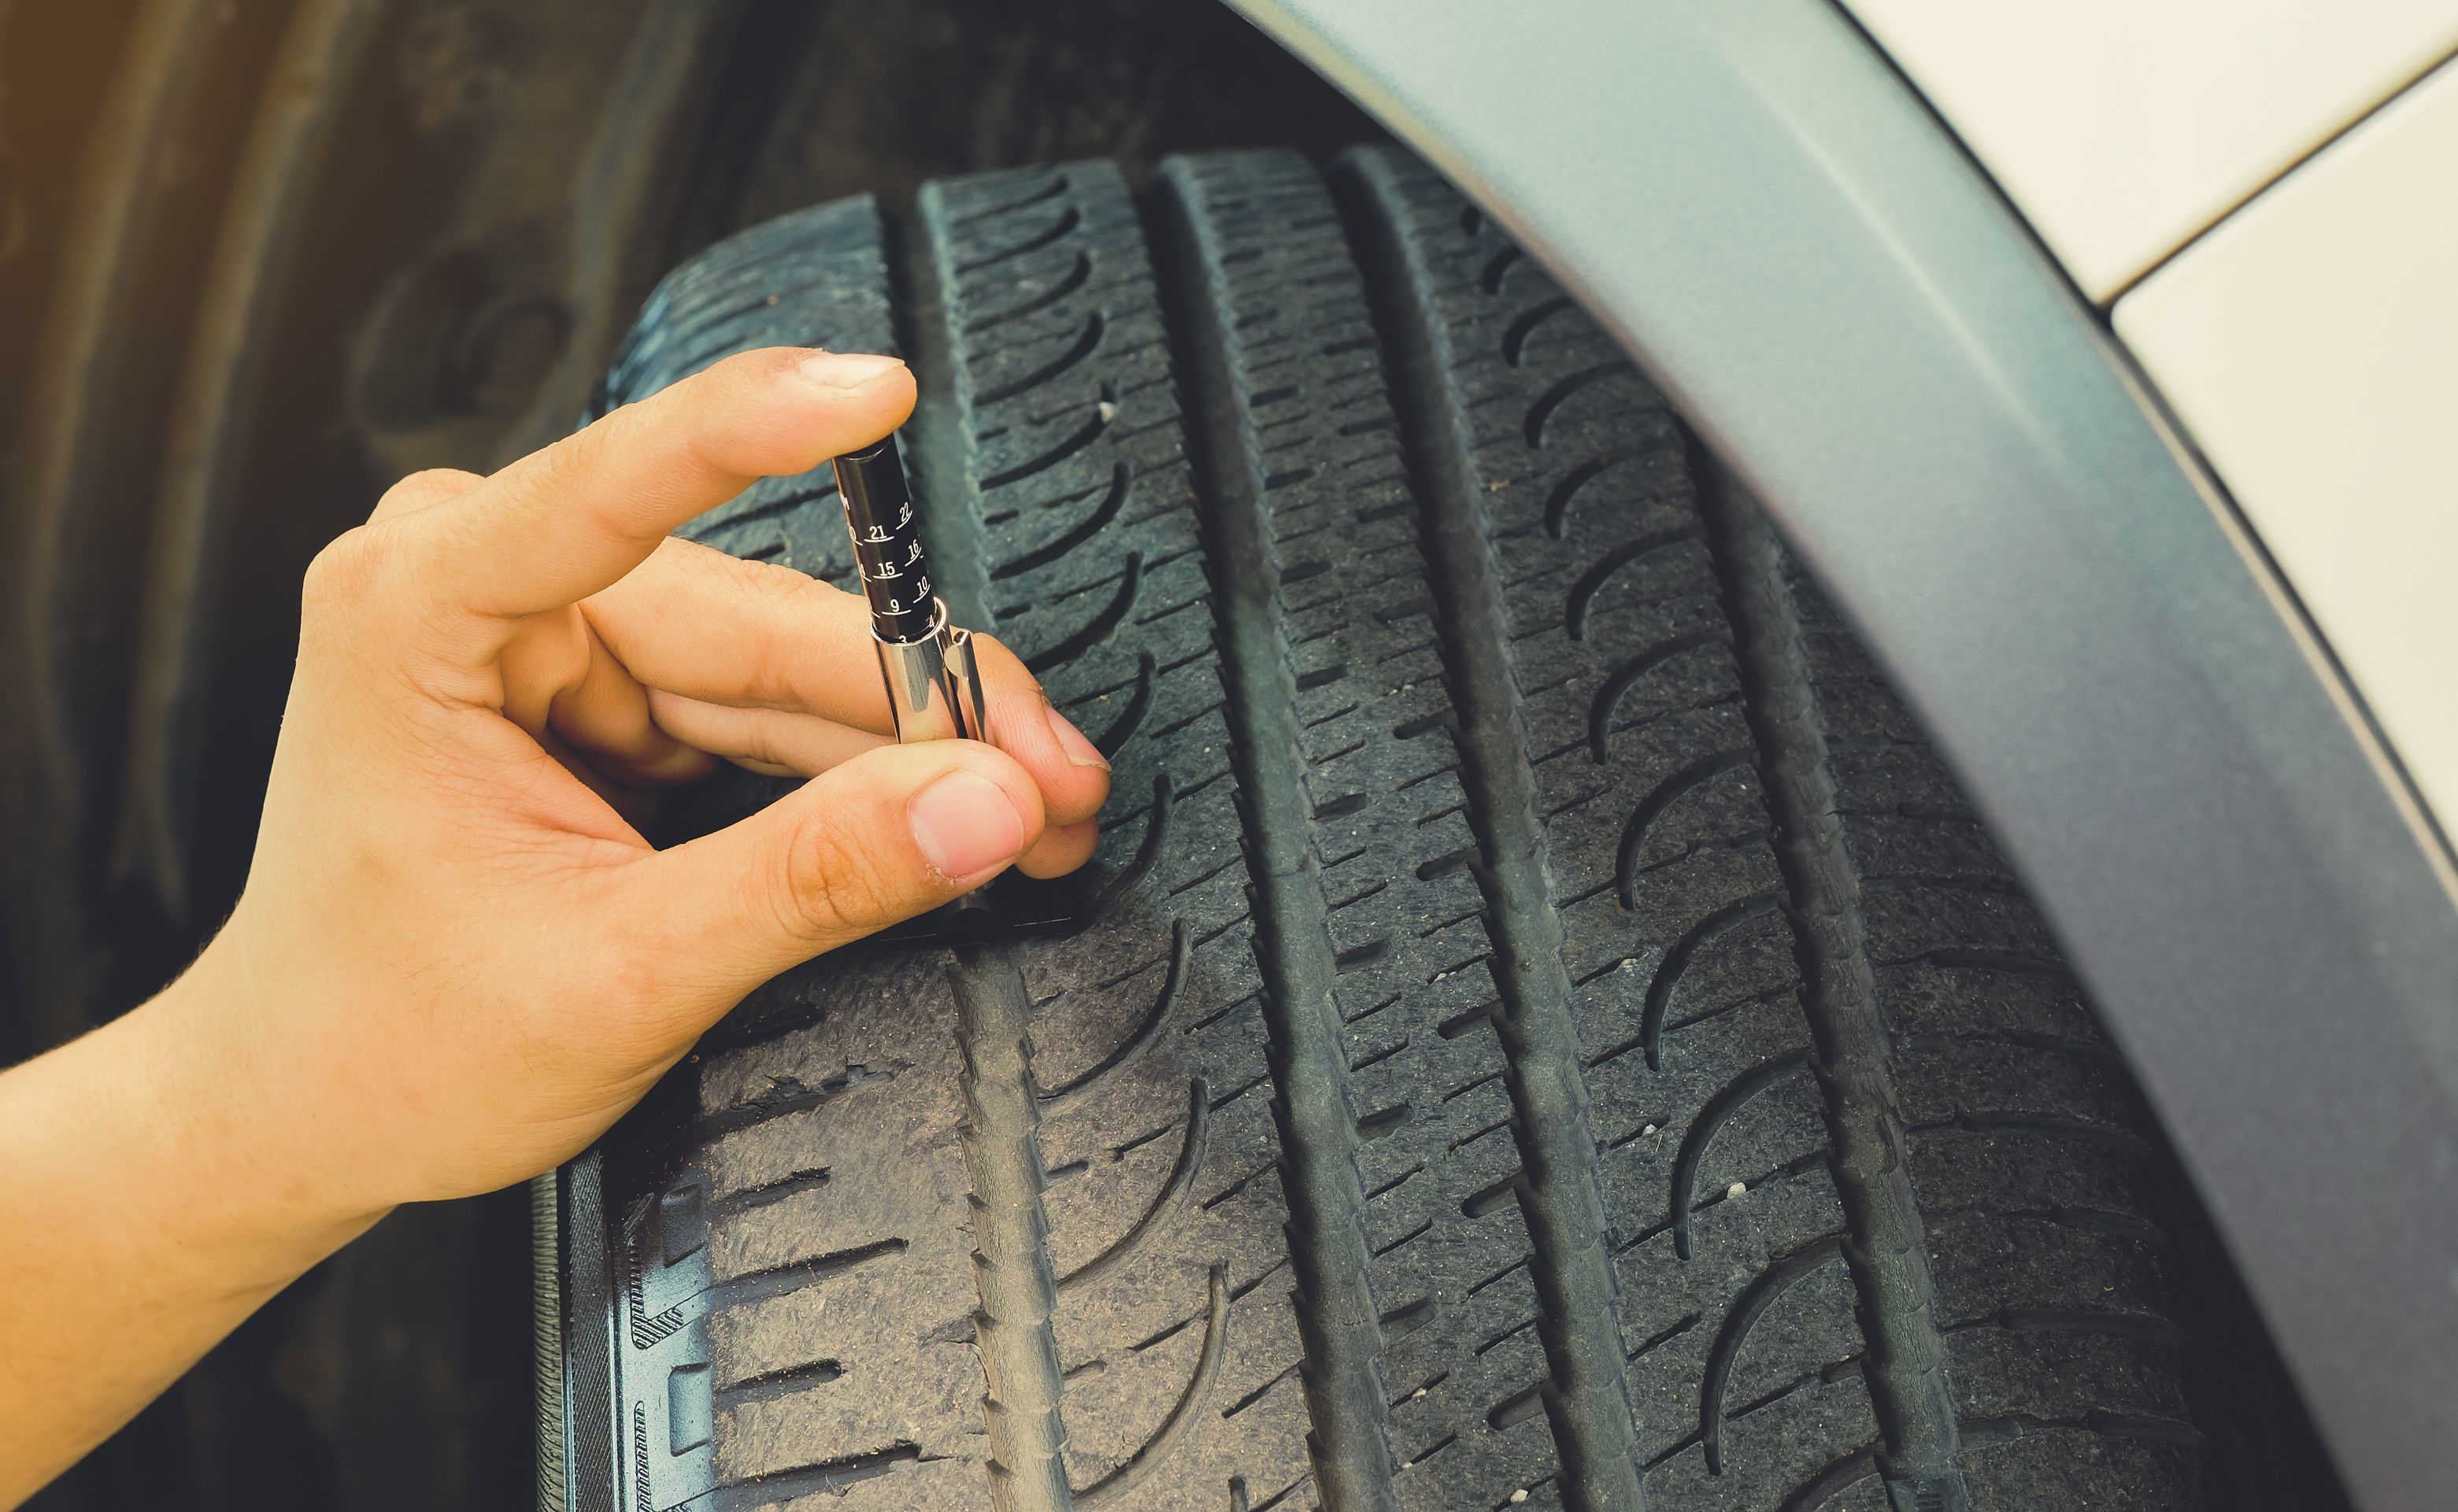 Measuring Tread Wear On A Tire On A Car Safe To Use On A Daily Basis